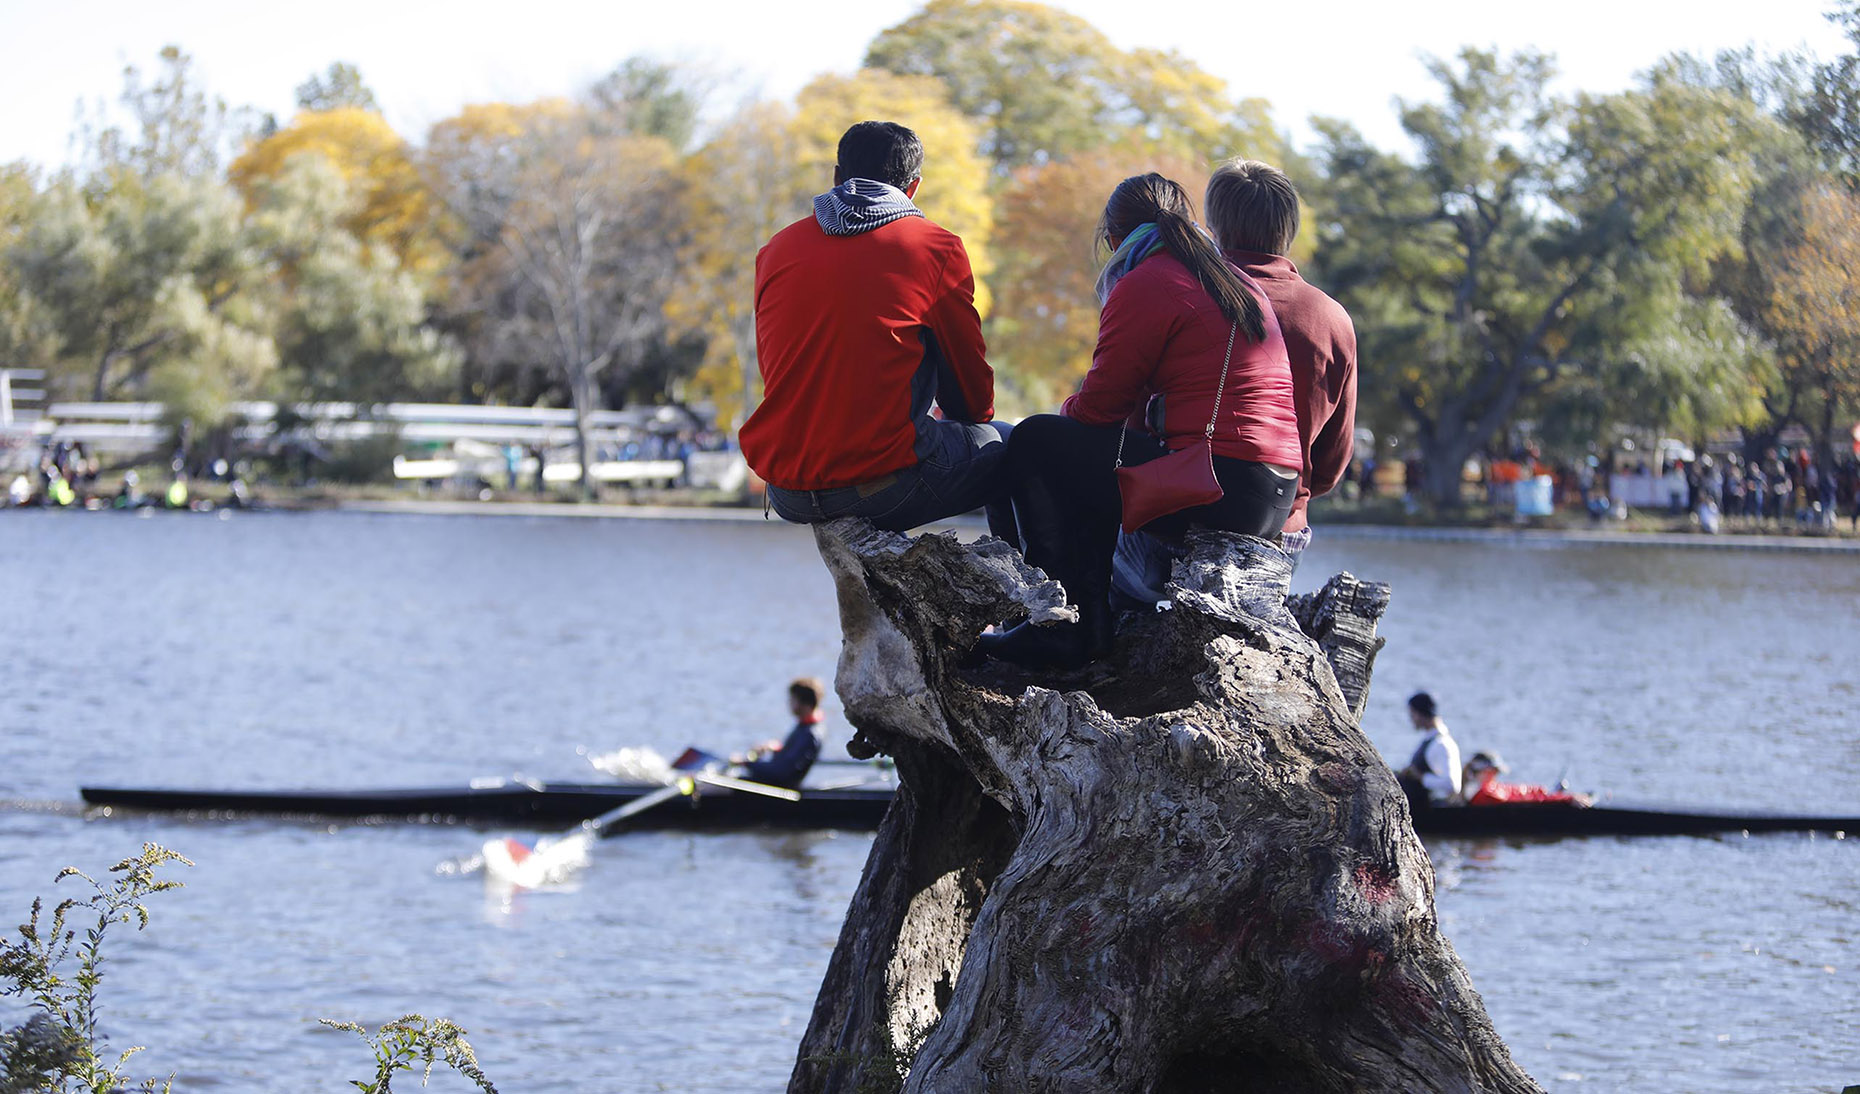 Rowing Spectators on a Tree Stump